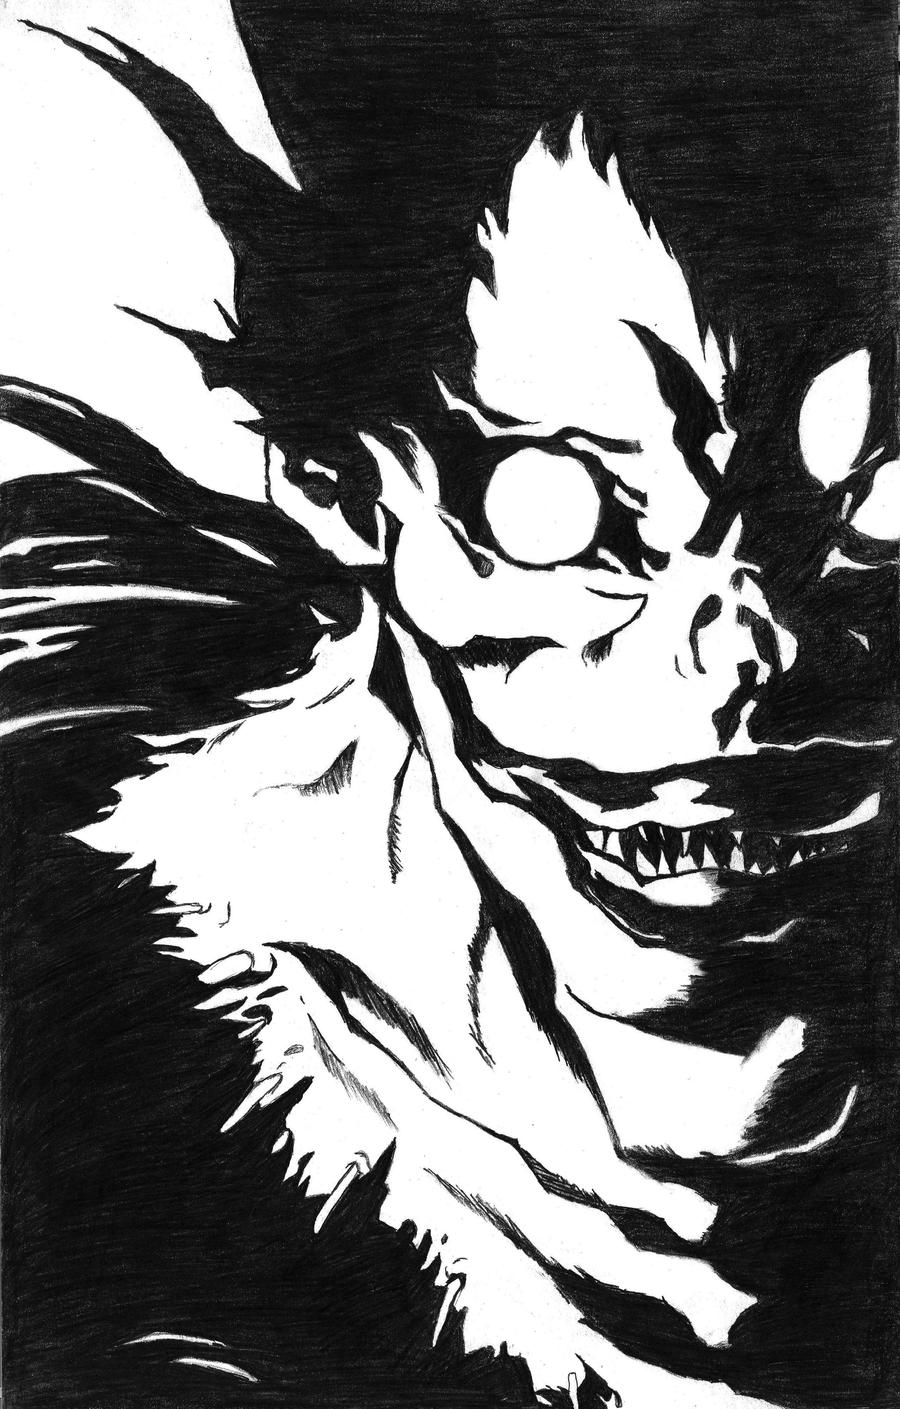 (Anime) Death Note: Ryuk Ver.2 by luizmx on DeviantArt